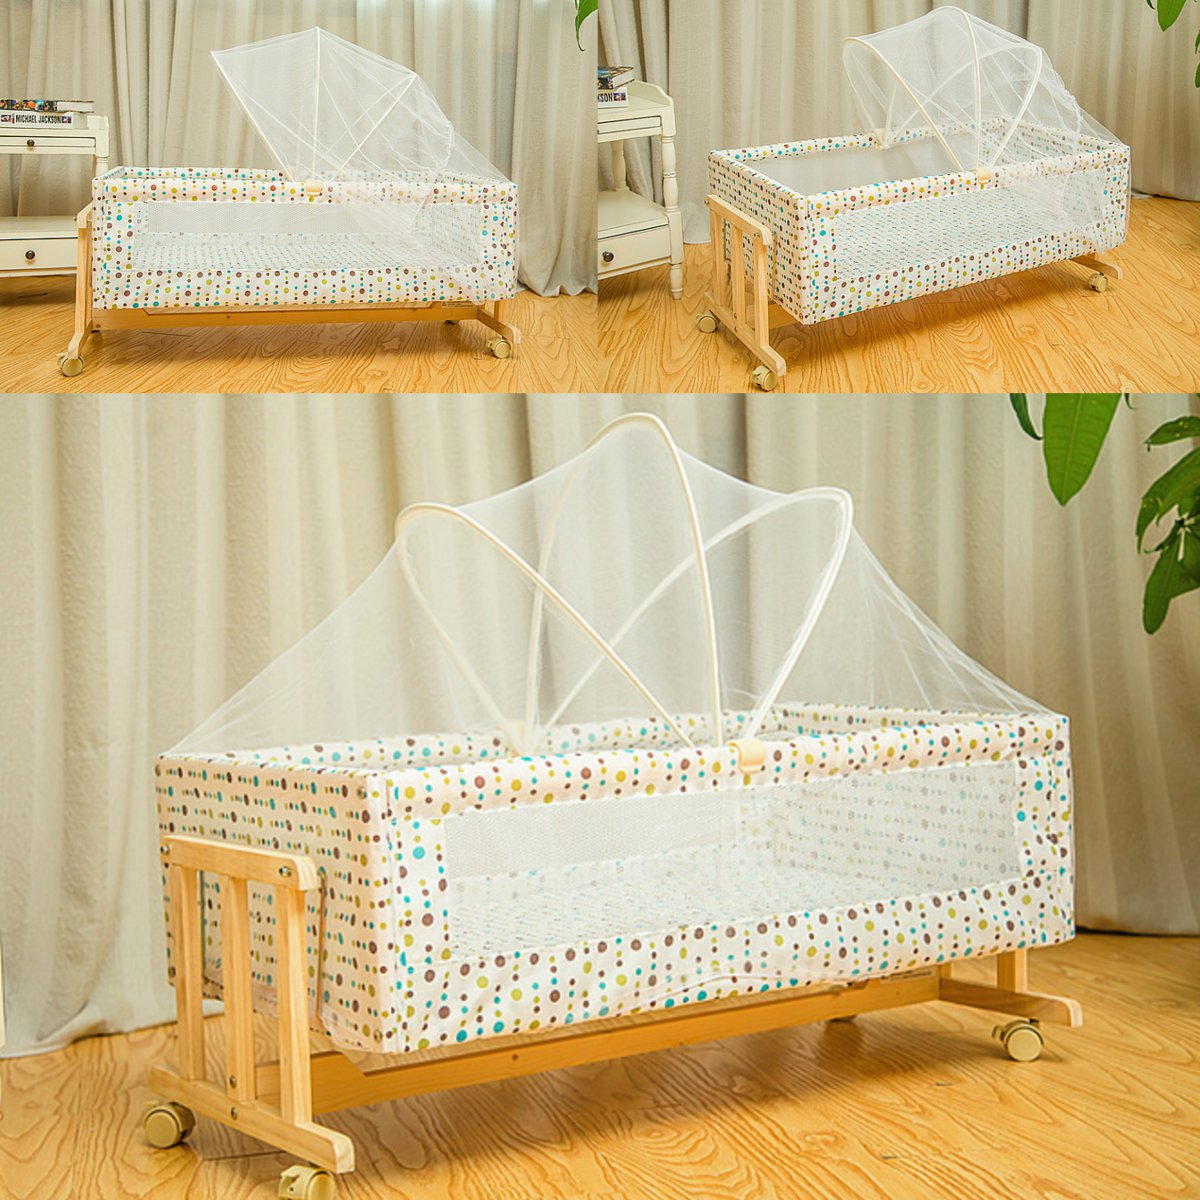 Portable Wooden Baby Cradle Folding Rocking Cribs Newborn Baby Cribs Bassinet 4 Wheels Nursery Bed Sleeper Furniture 90x48x41cm